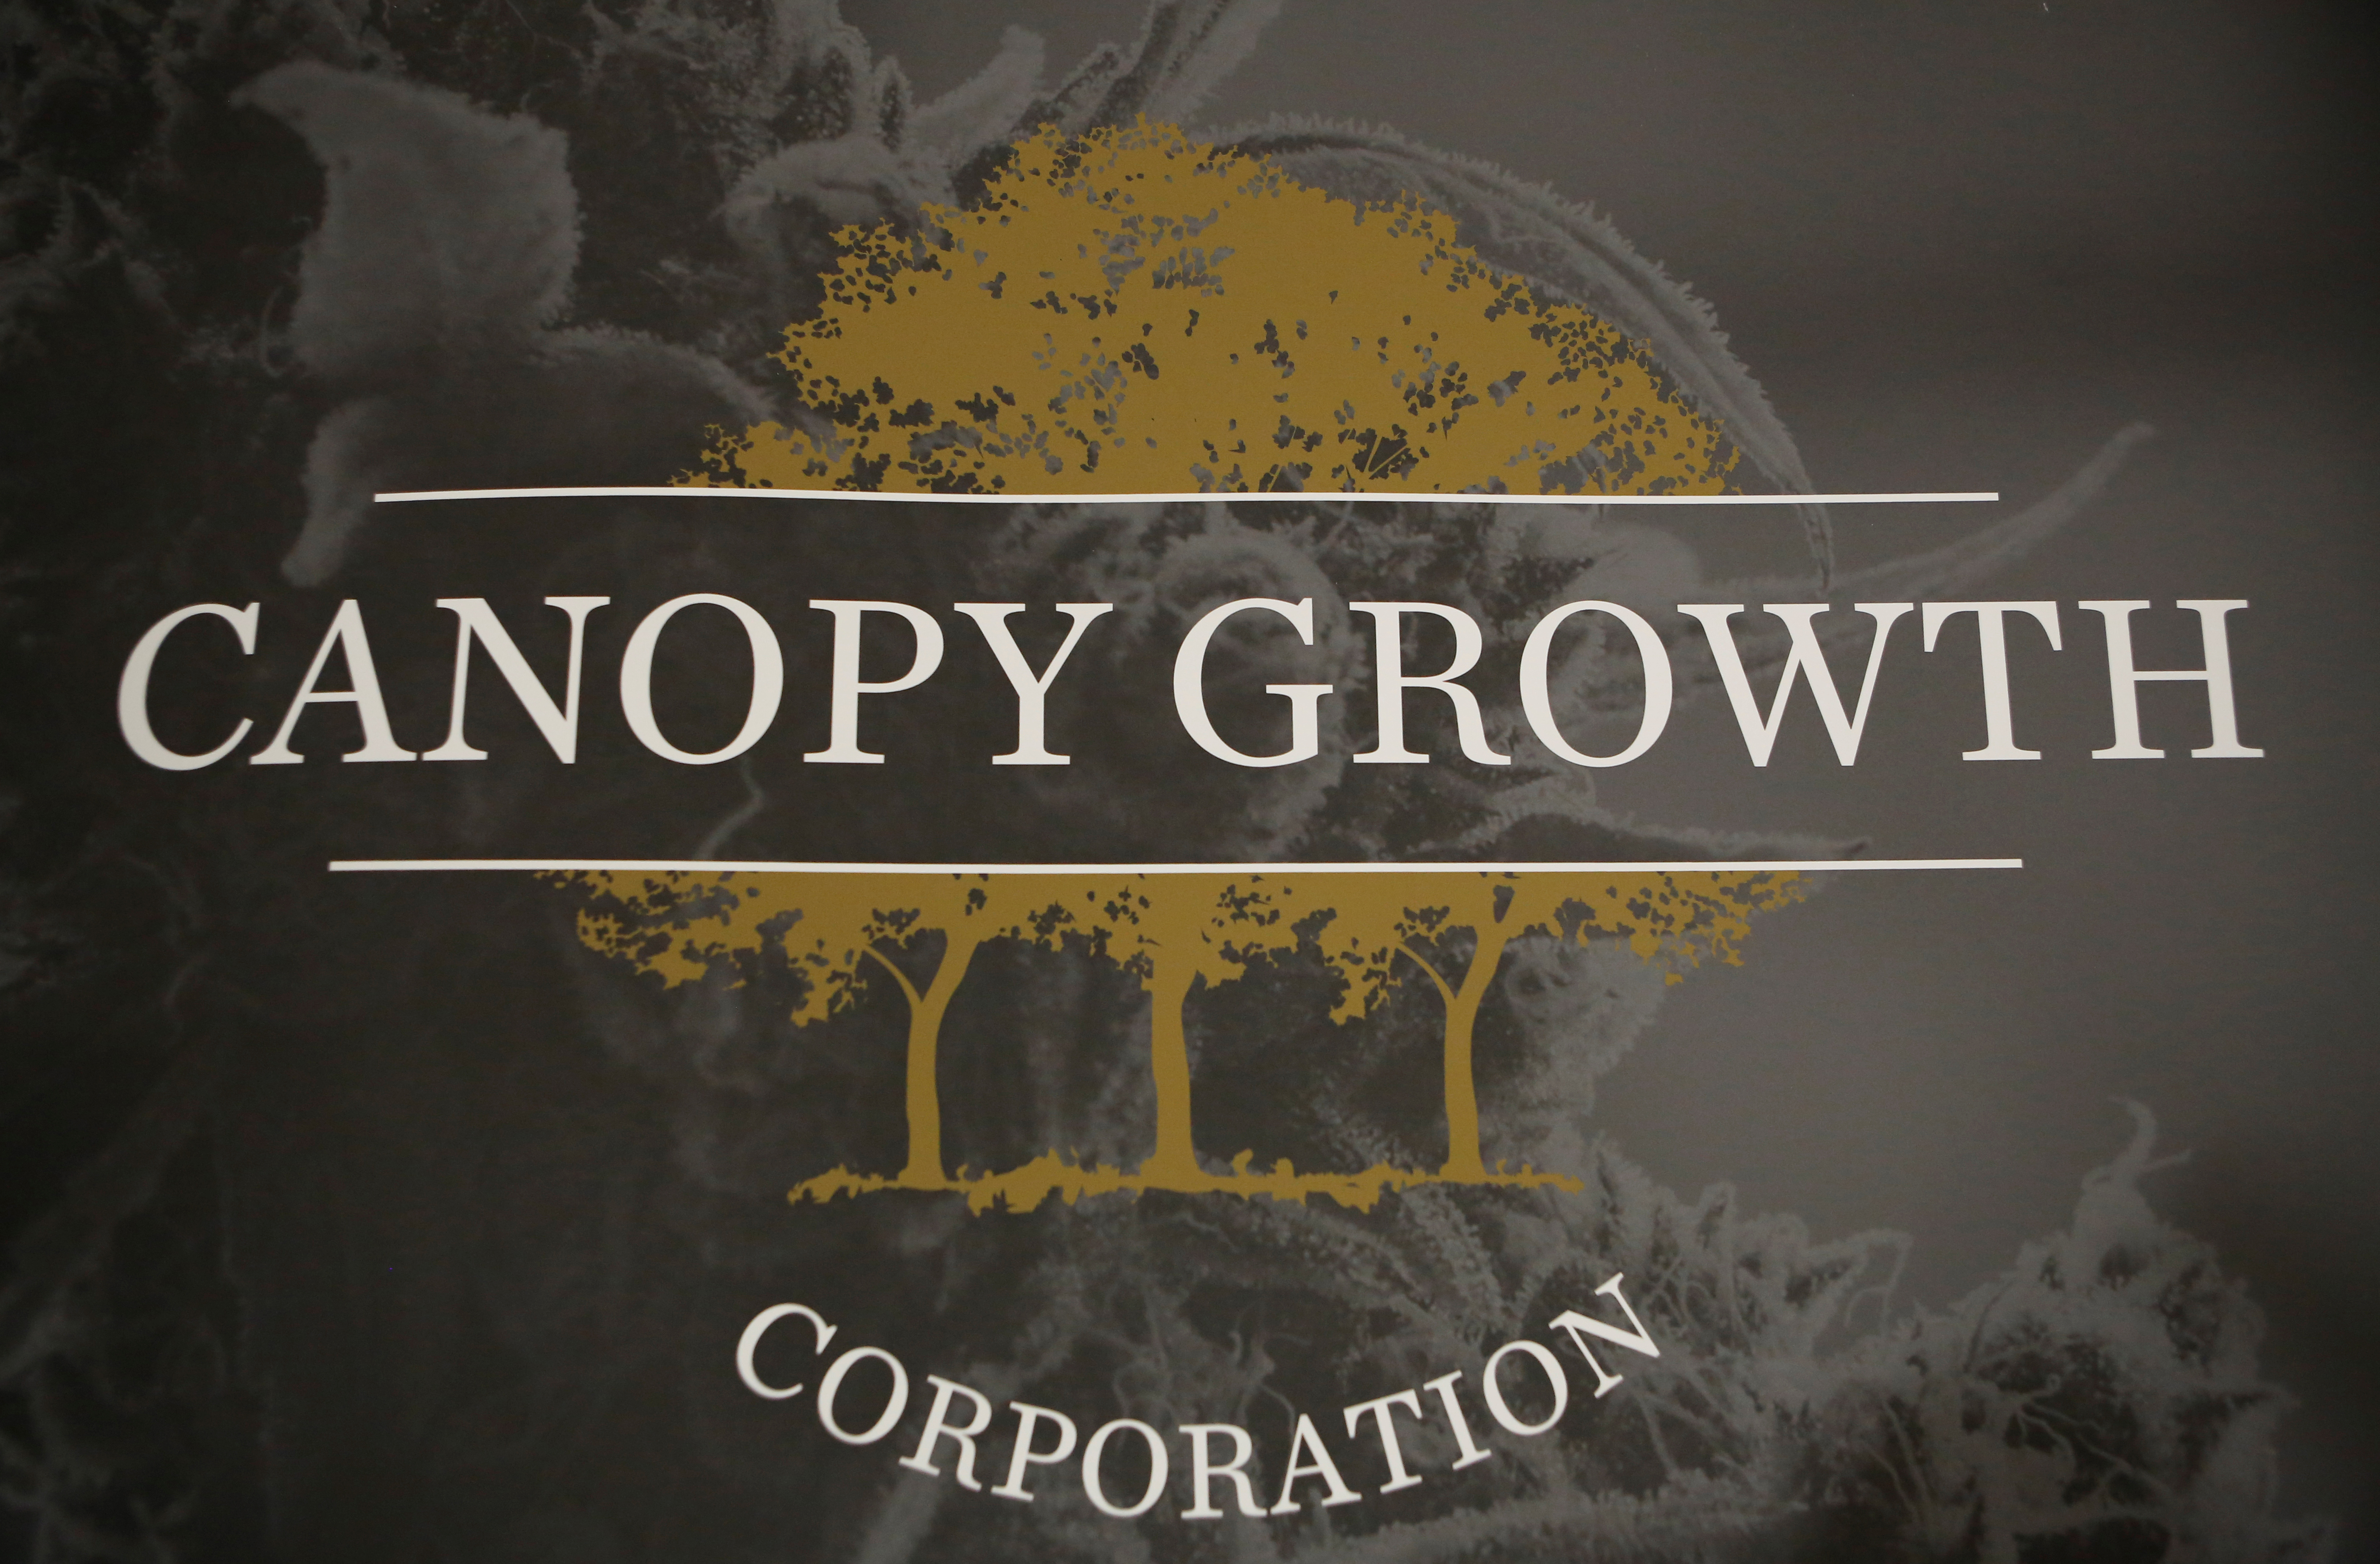 A sign featuring Canopy Growth Corporation's logo is pictured at their facility in Smiths Falls, Ontario, Canada, January 4, 2018. REUTERS/Chris Wattie